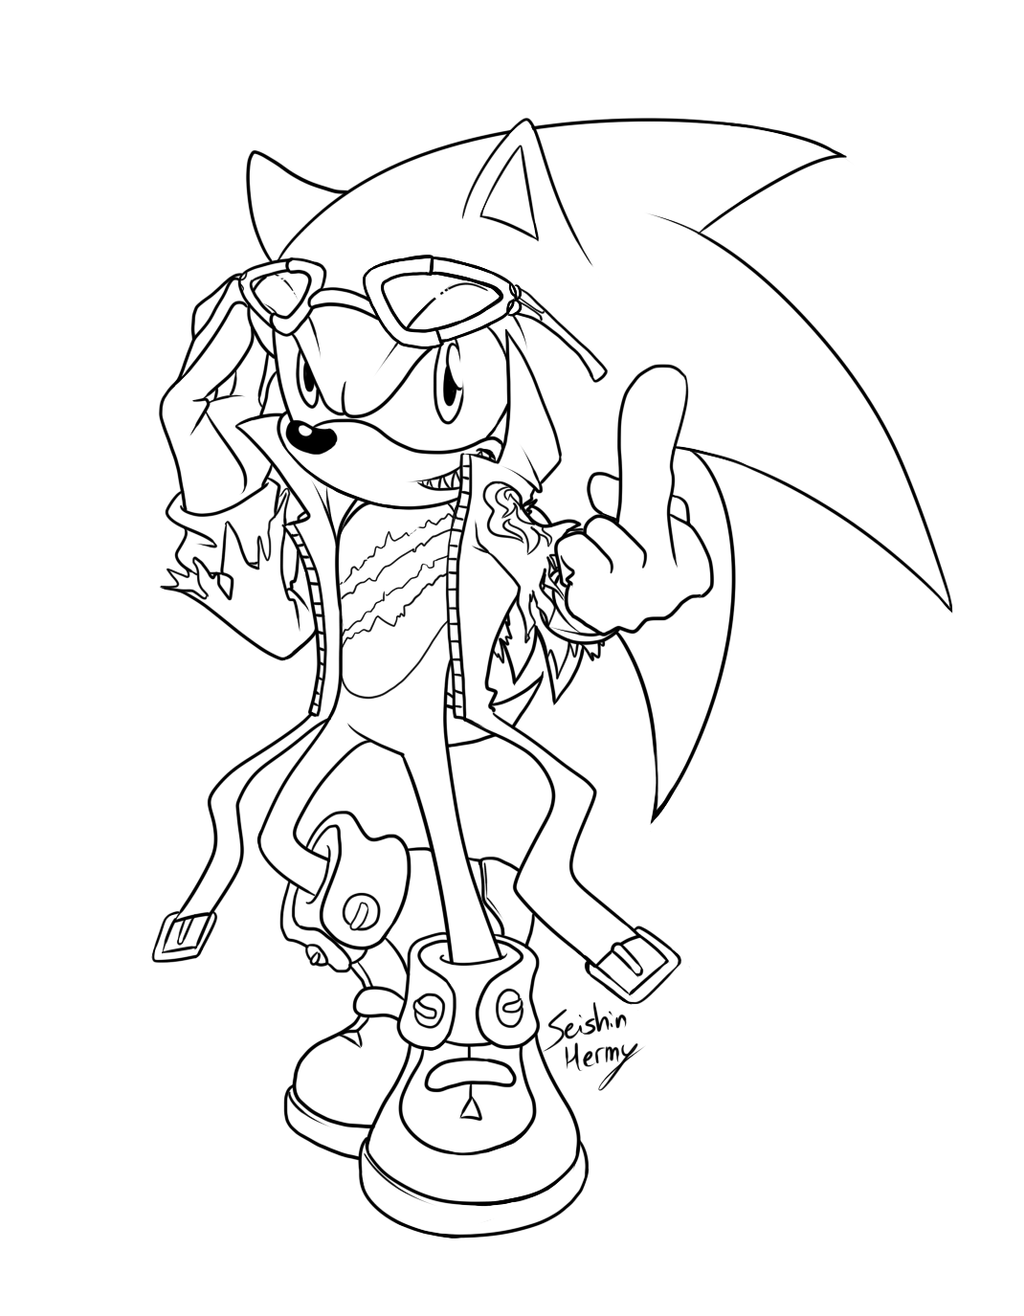 scourge the hedgehog coloring pages scourge the hedgehog pages coloring pages hedgehog pages scourge coloring the